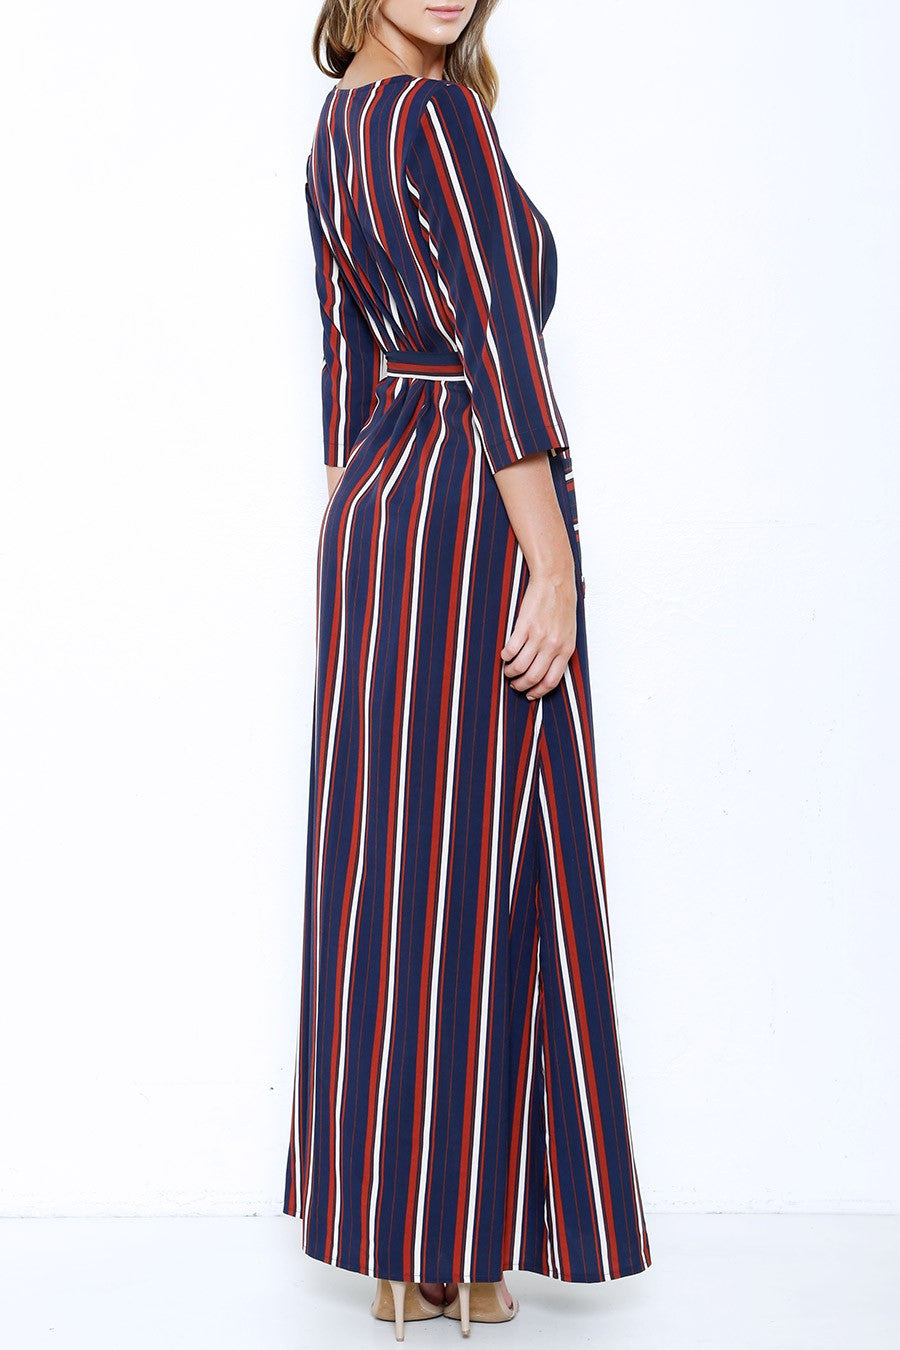 Virtue Maxi Dress